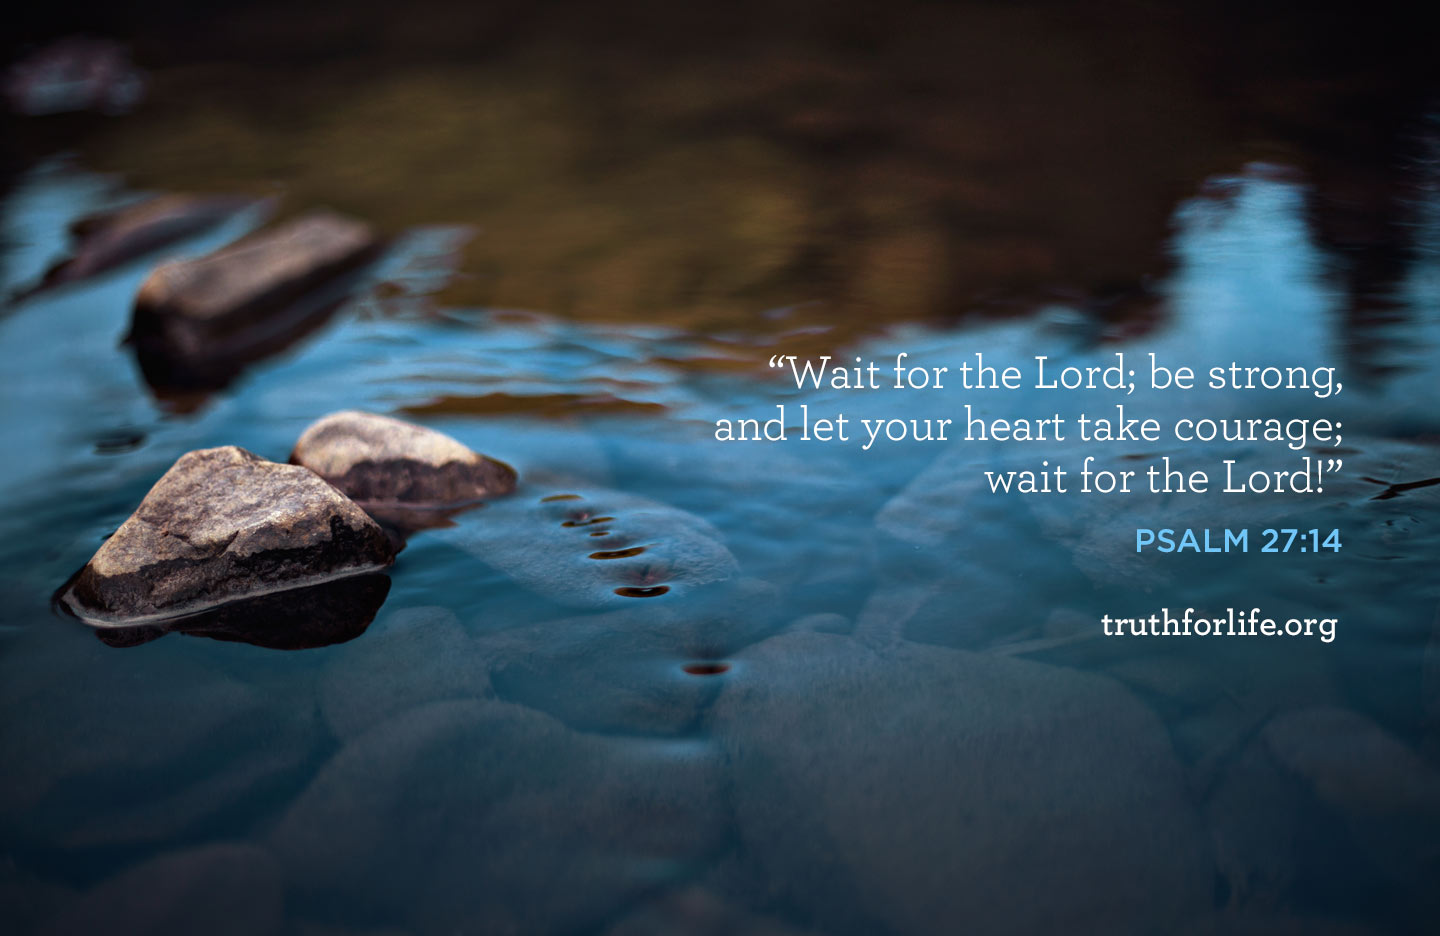 WaitForTheLord_Facebook_BlogPost.jpg